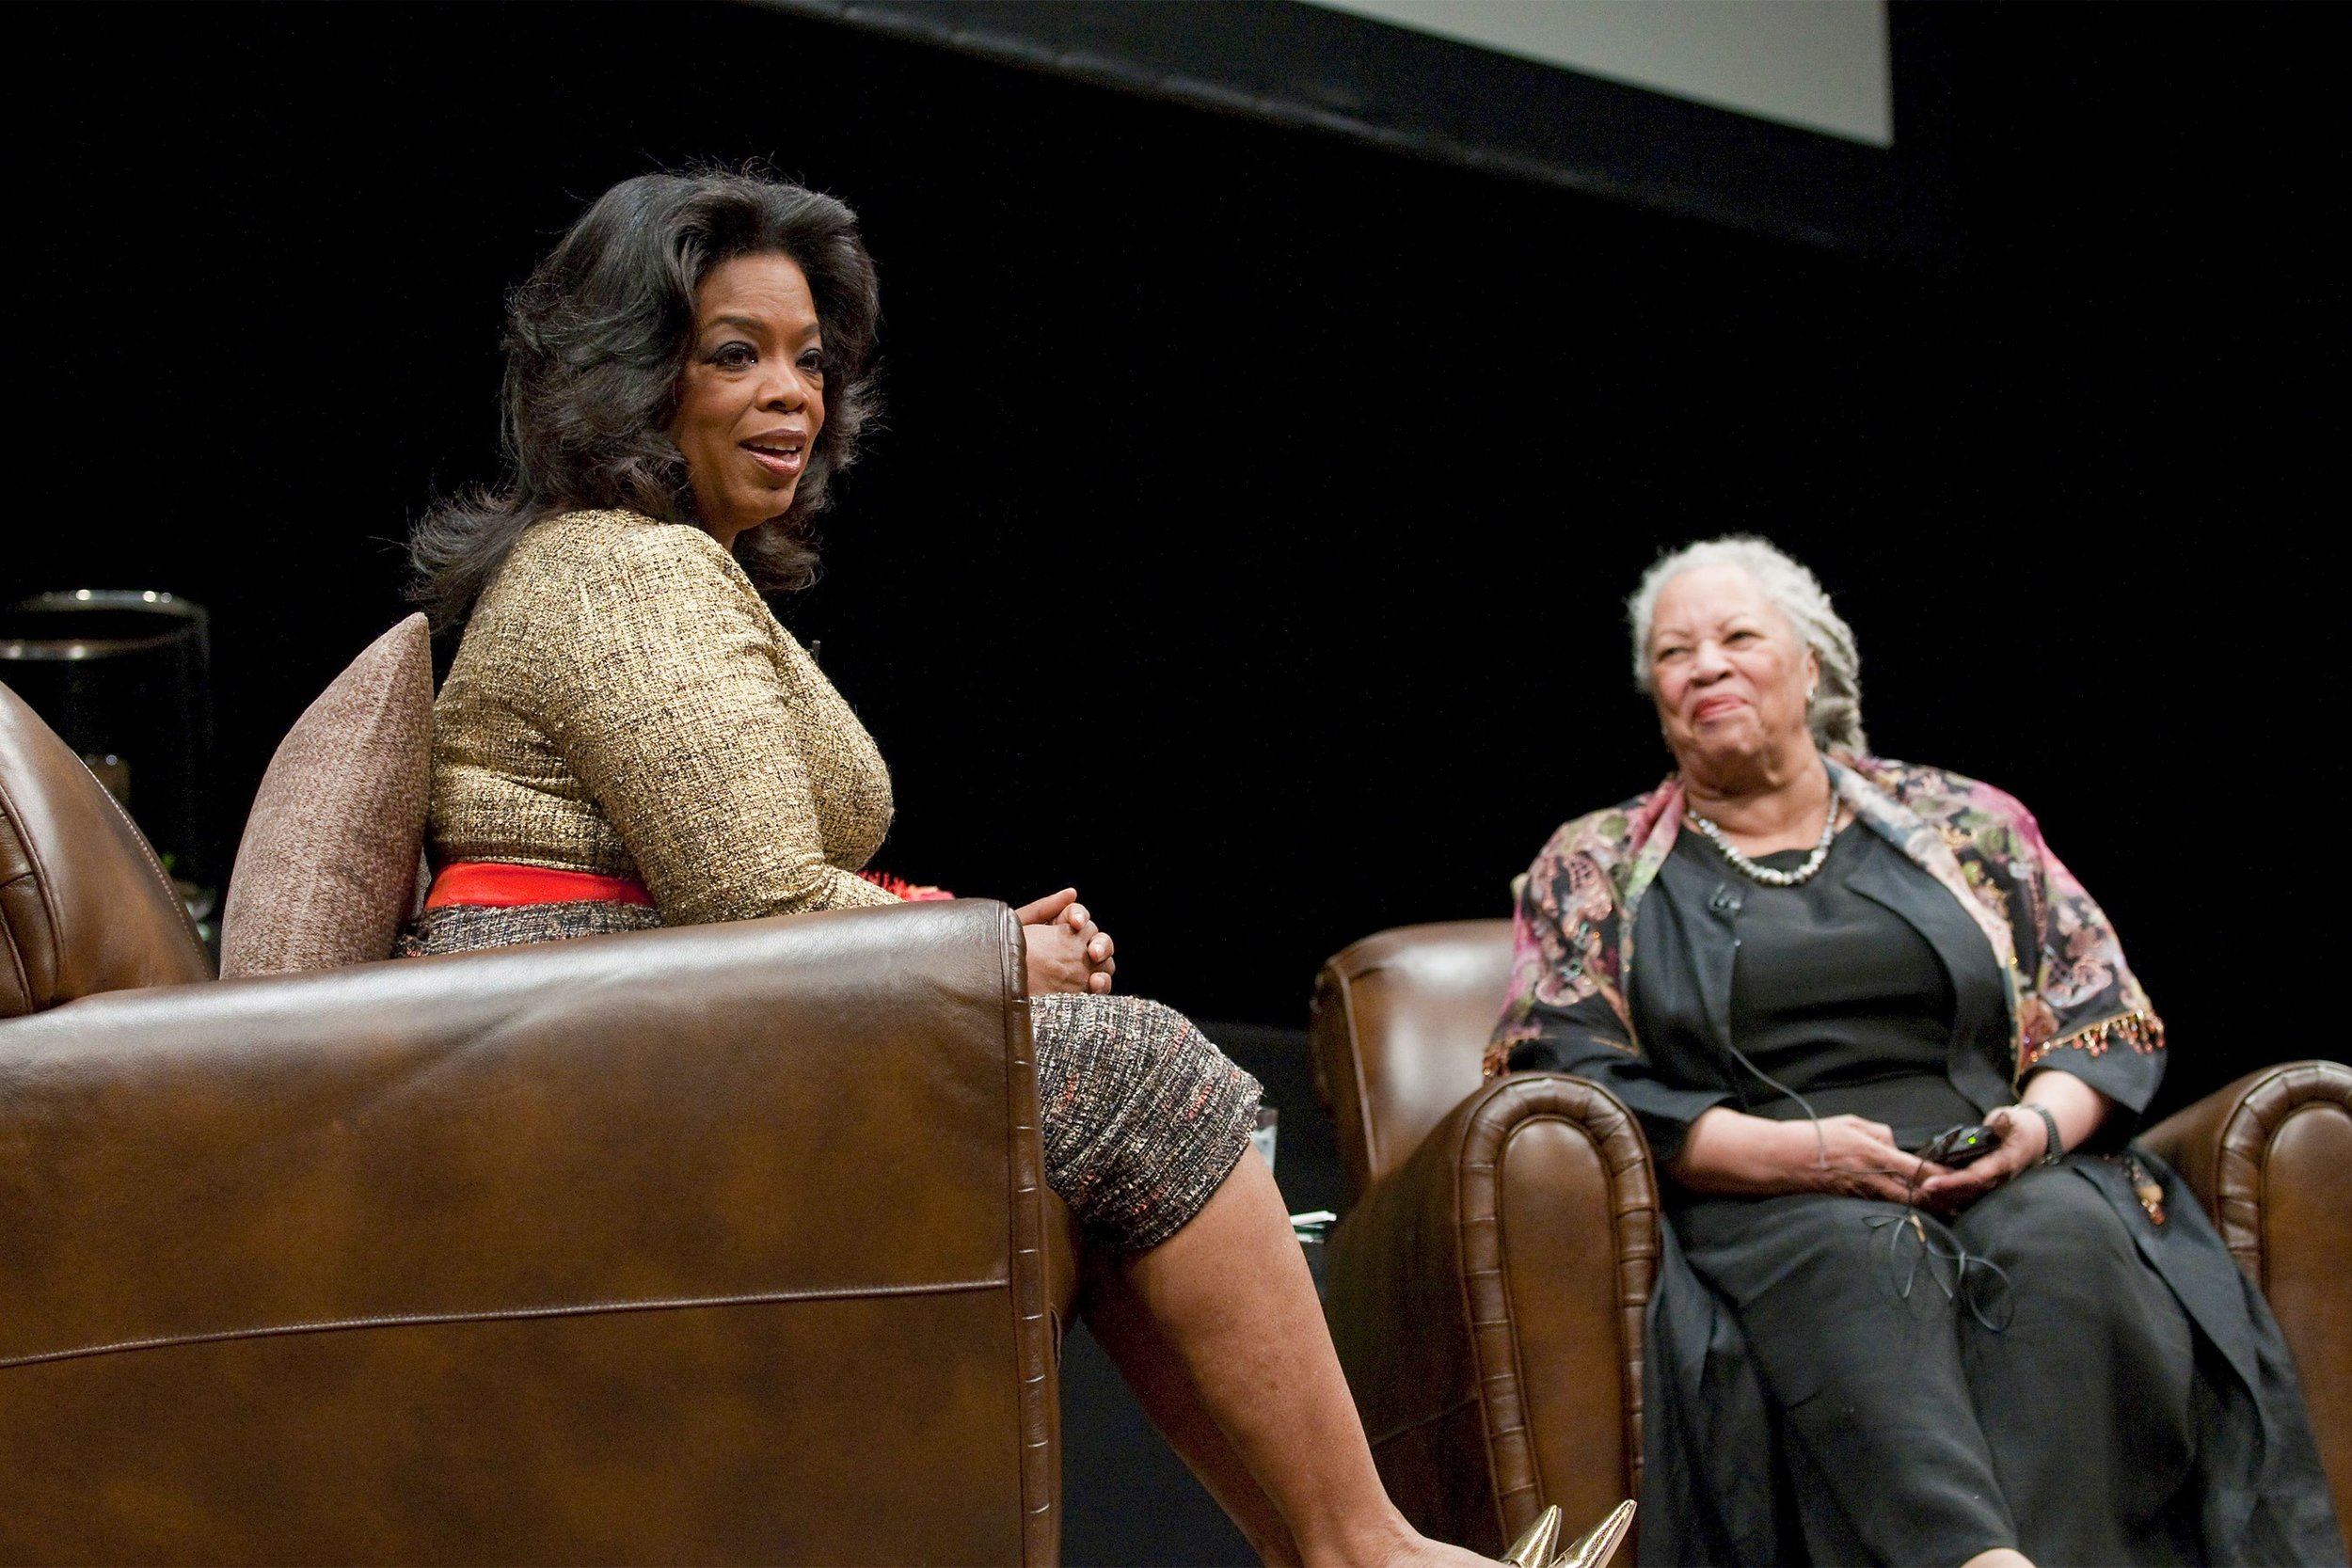 """Oprah expressed one concern after finishing  Beloved : she found herself returning to some of the prose, unable to proceed with the book until she was certain she understood even the densest portions. """"That, my darling,"""" responded Professor Morrison, """"is called  reading. """""""